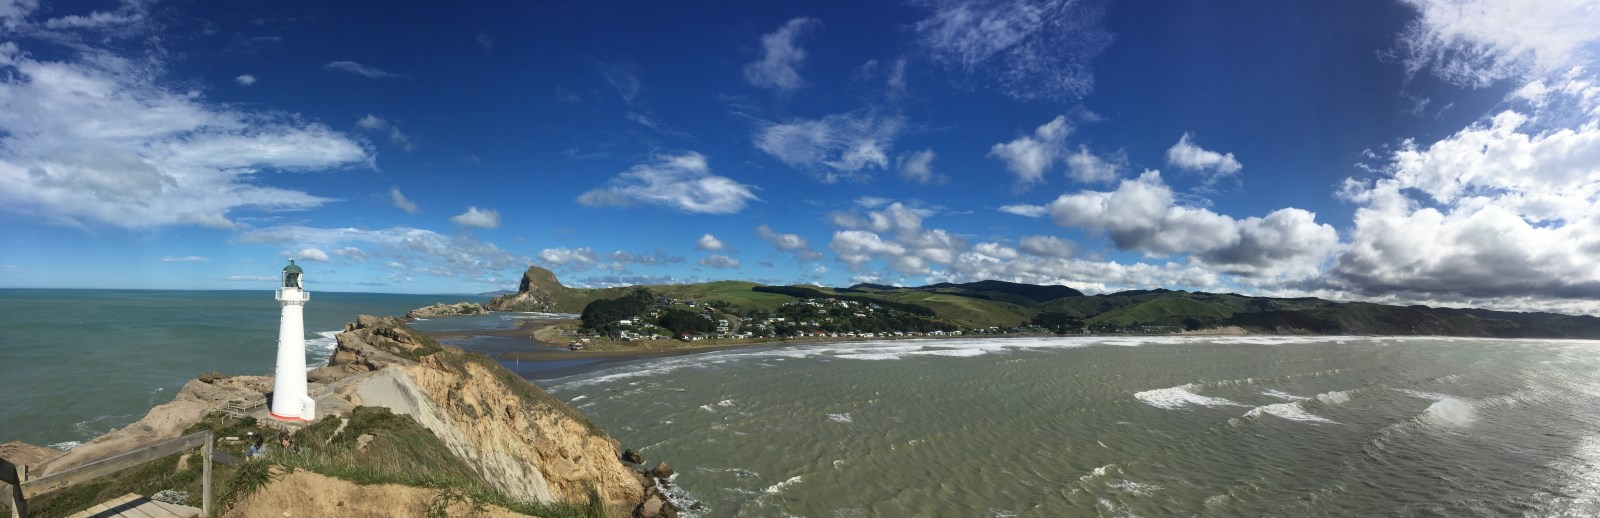 Panorama of Coastal NZ - Castlepoint Lighthouse